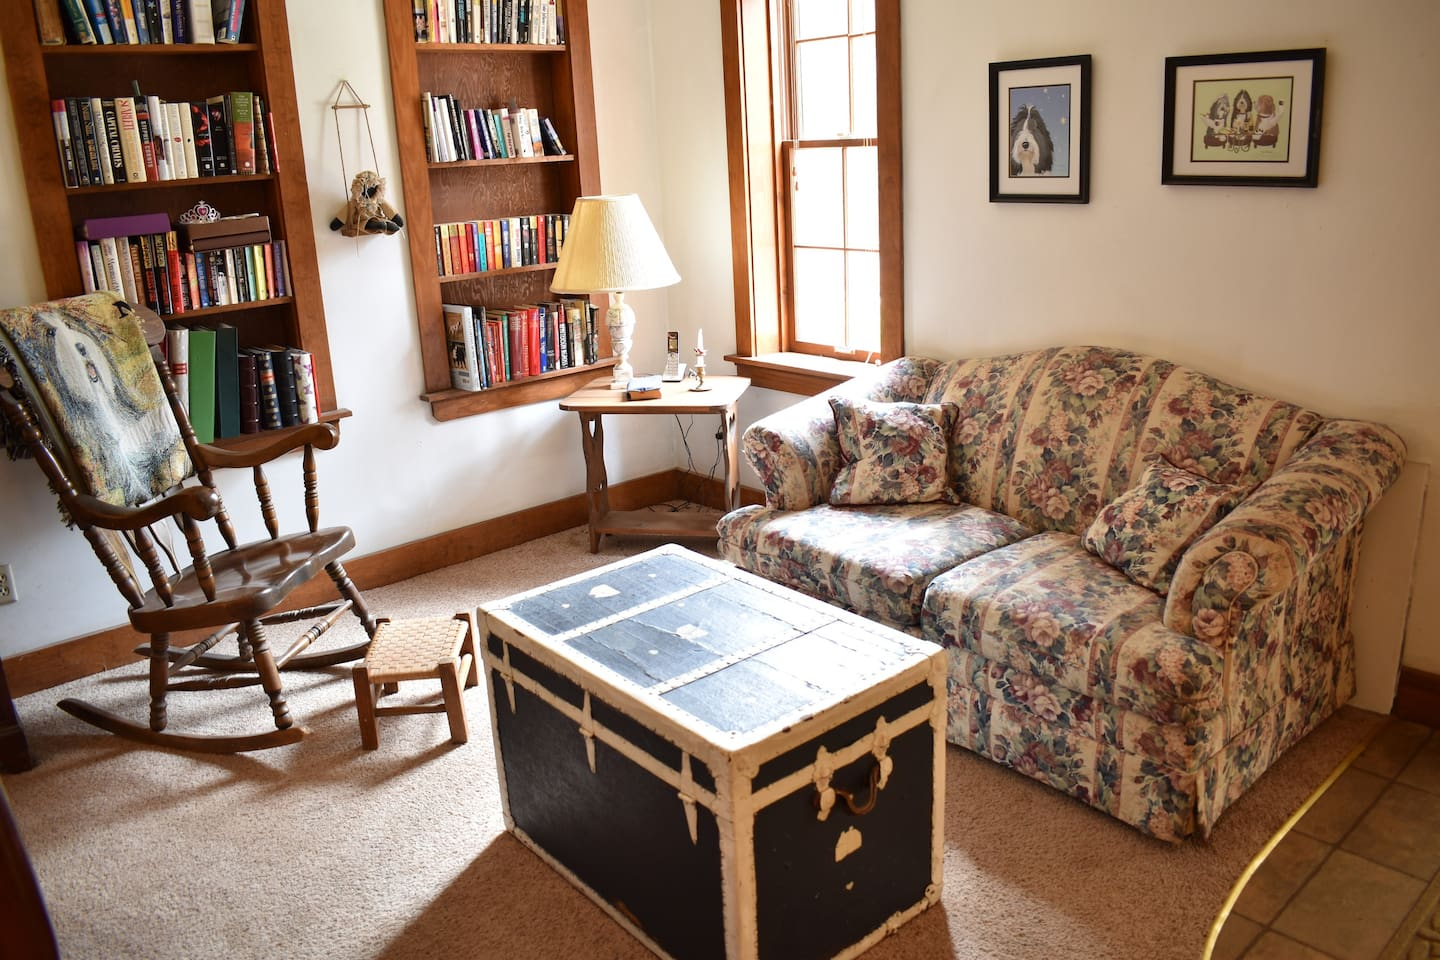 Sitting/reading area in 1st bedroom.